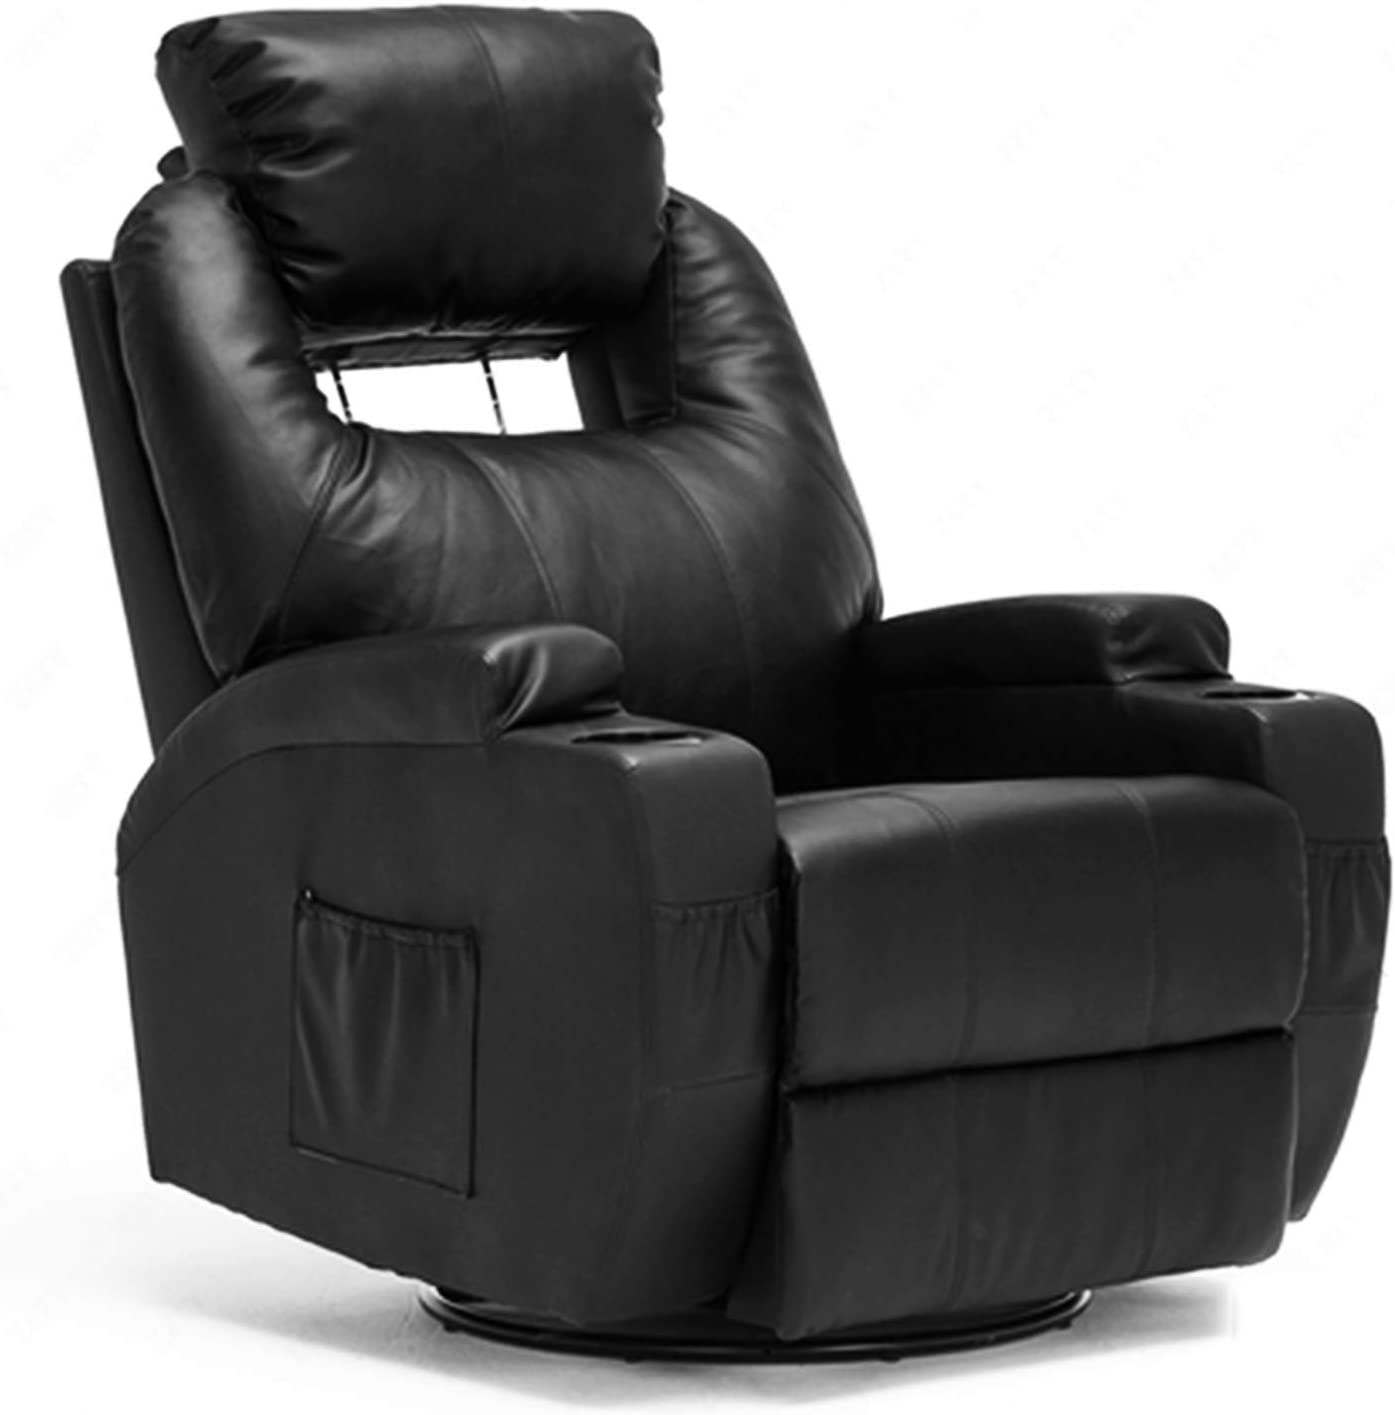 Mecor Massage Recliner Chair with Headrest Adjustable PU Leather Recliner Chair with Heat Rocker Recliner with 360 Degree Swivel/Cup Holders/Remote Control for Living Room (Black-2)